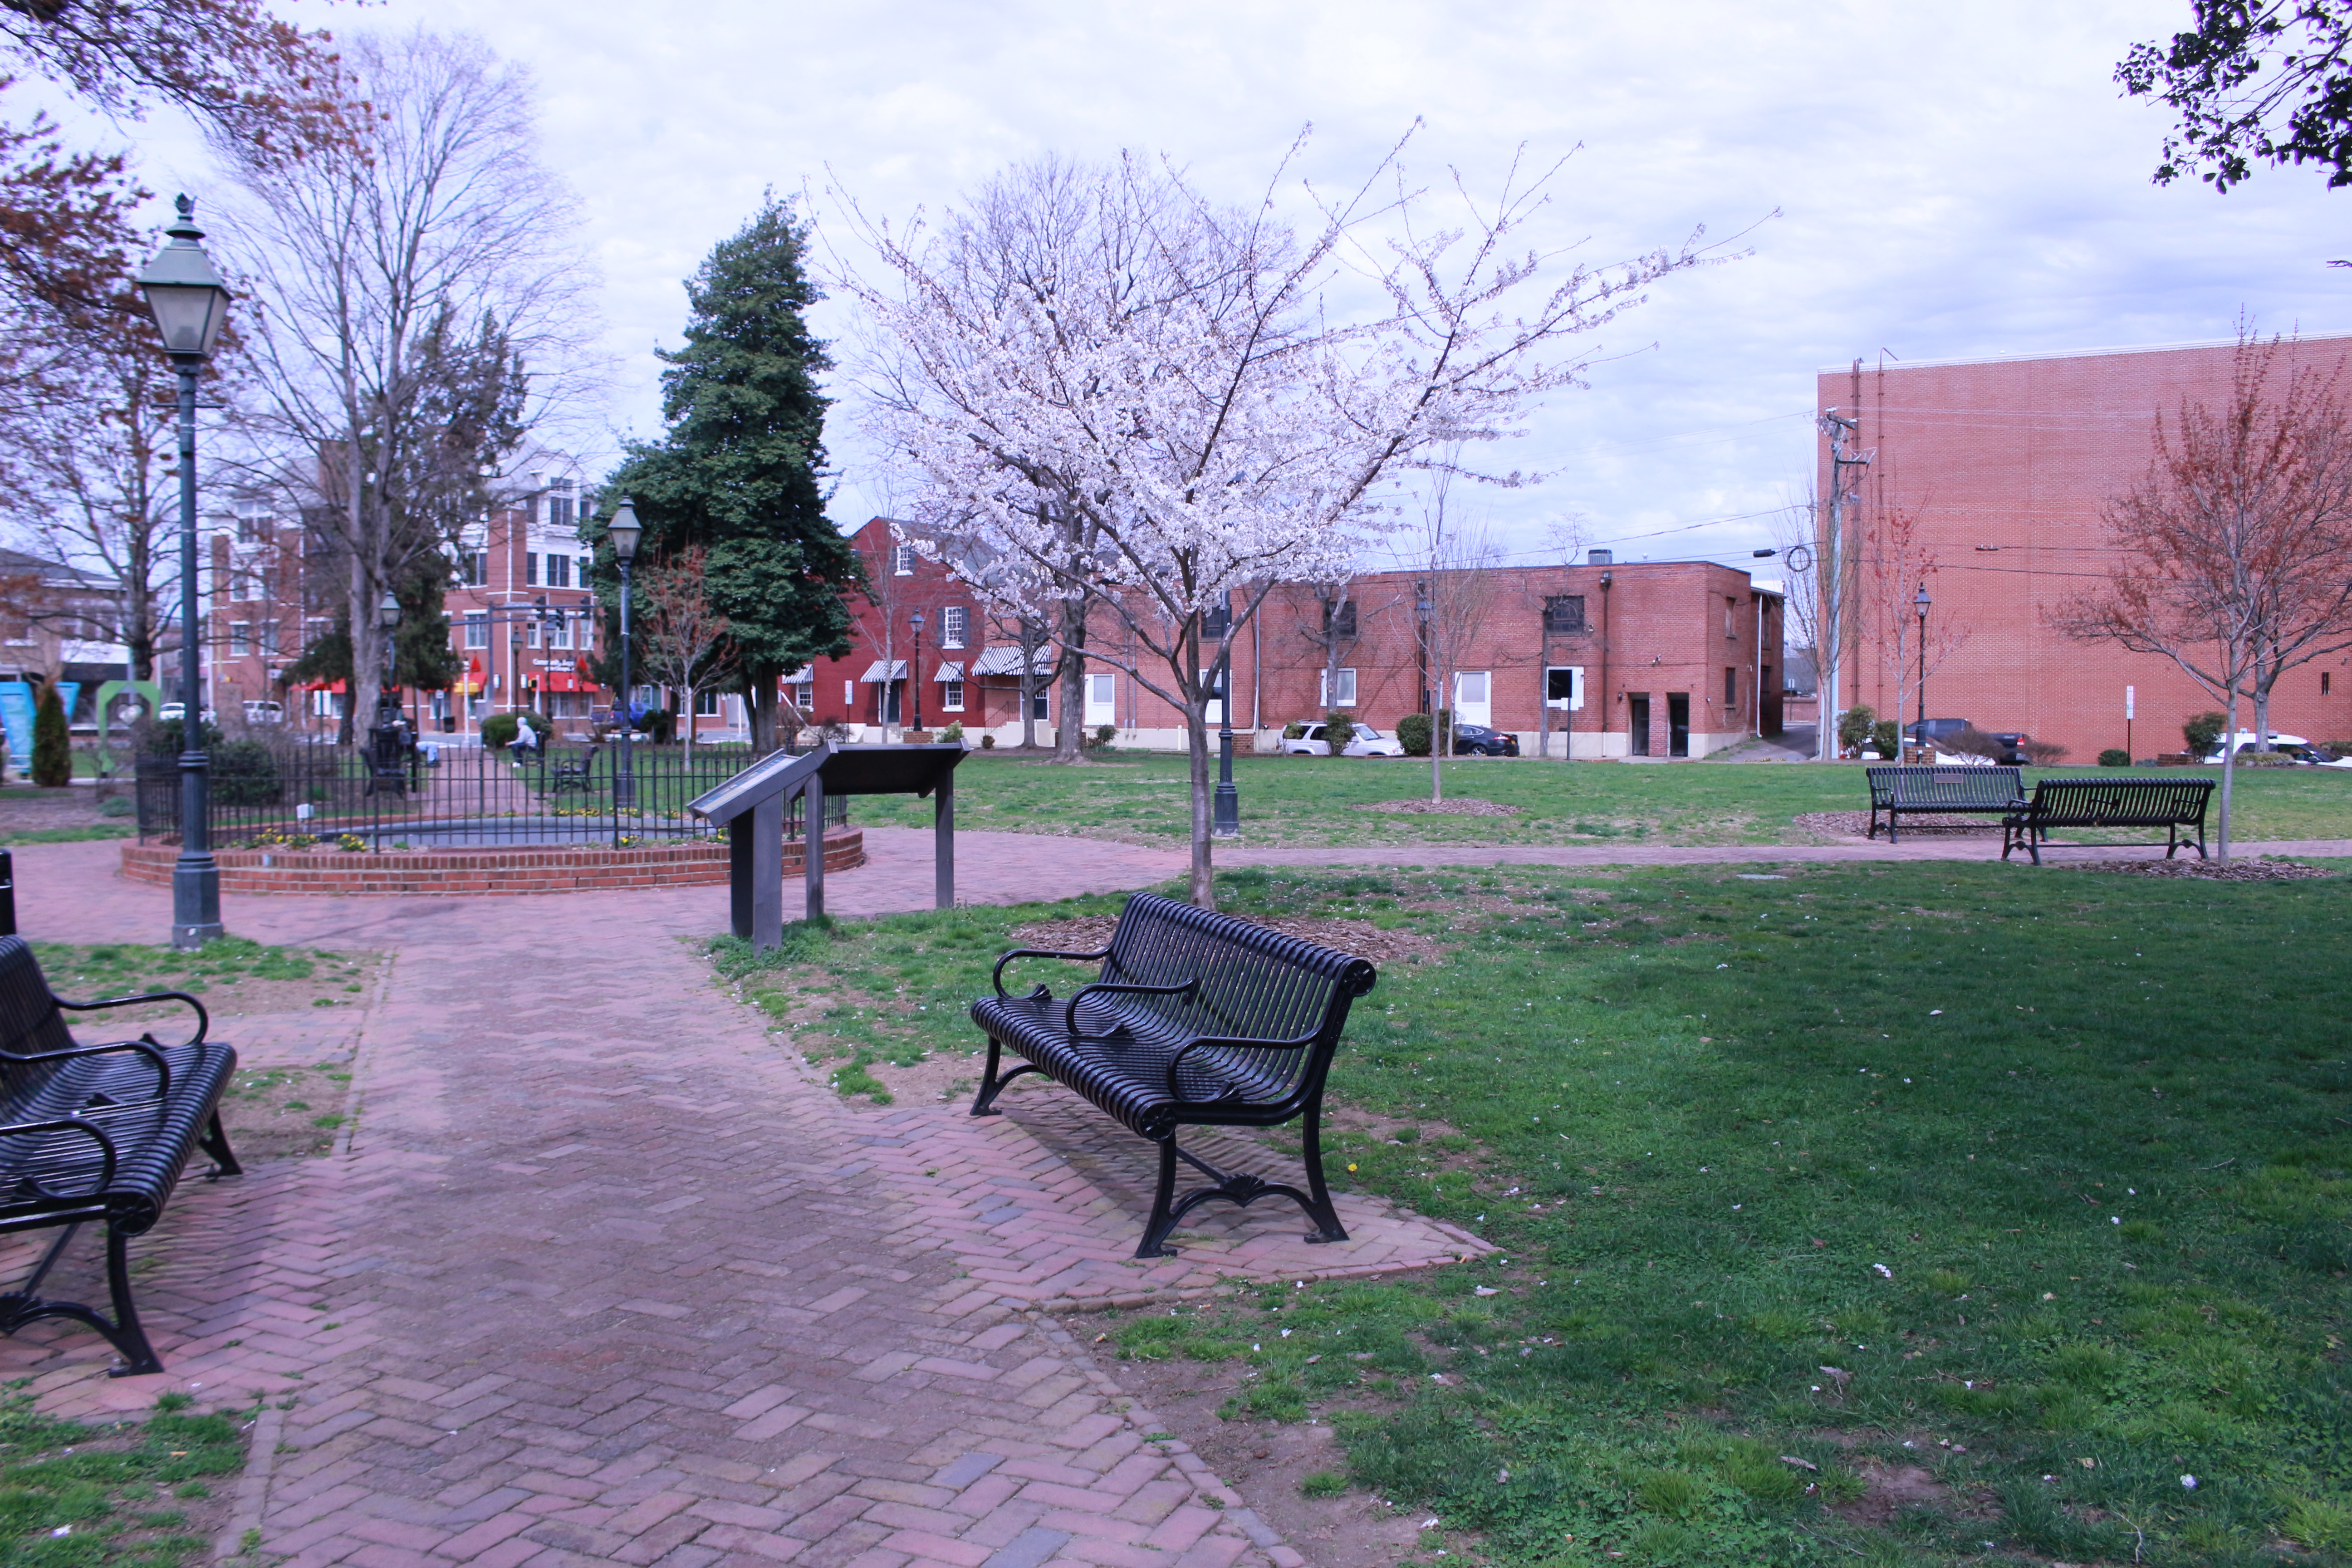 Pictured is the a side view oh Hurkamp Park landscape